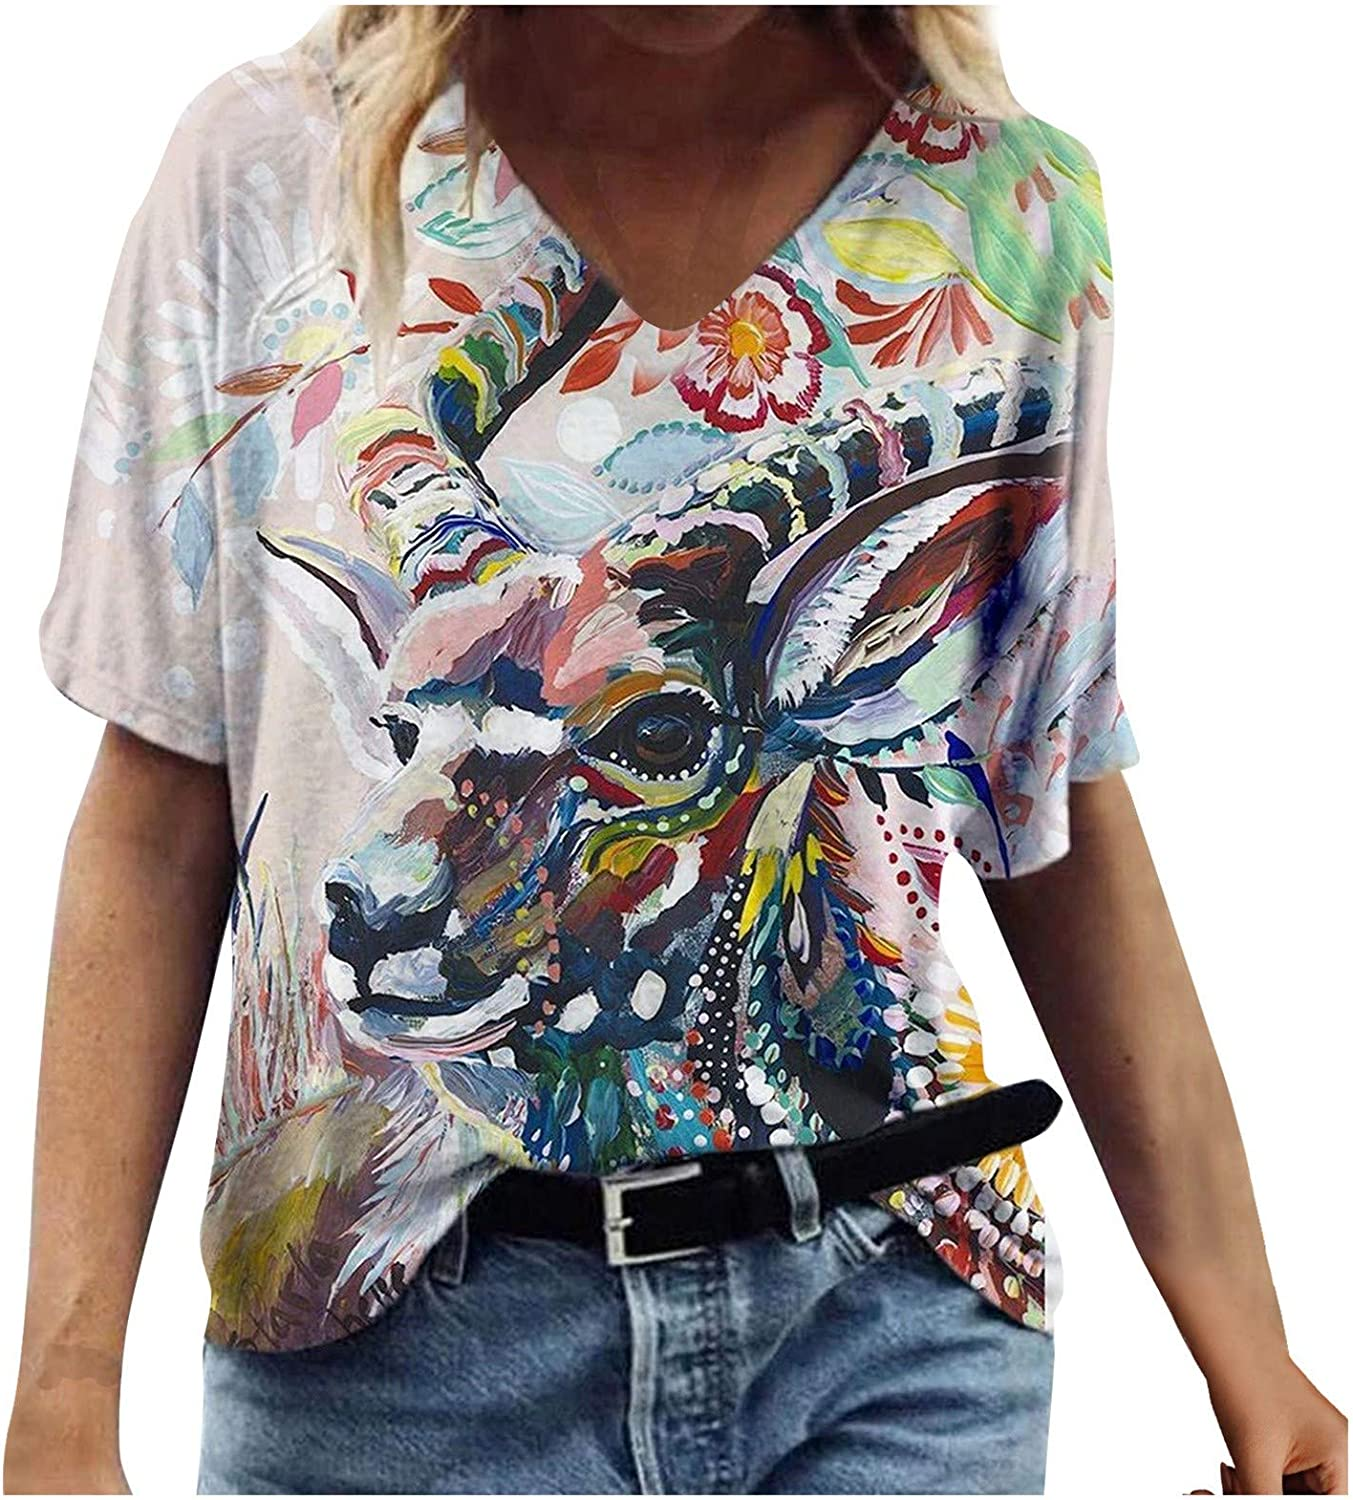 MASZONE Summer Tops for Women, Womens V-Neck Short Sleeve T-shirts Floral Plus Size Tops Casual Loose Tunic Blouse